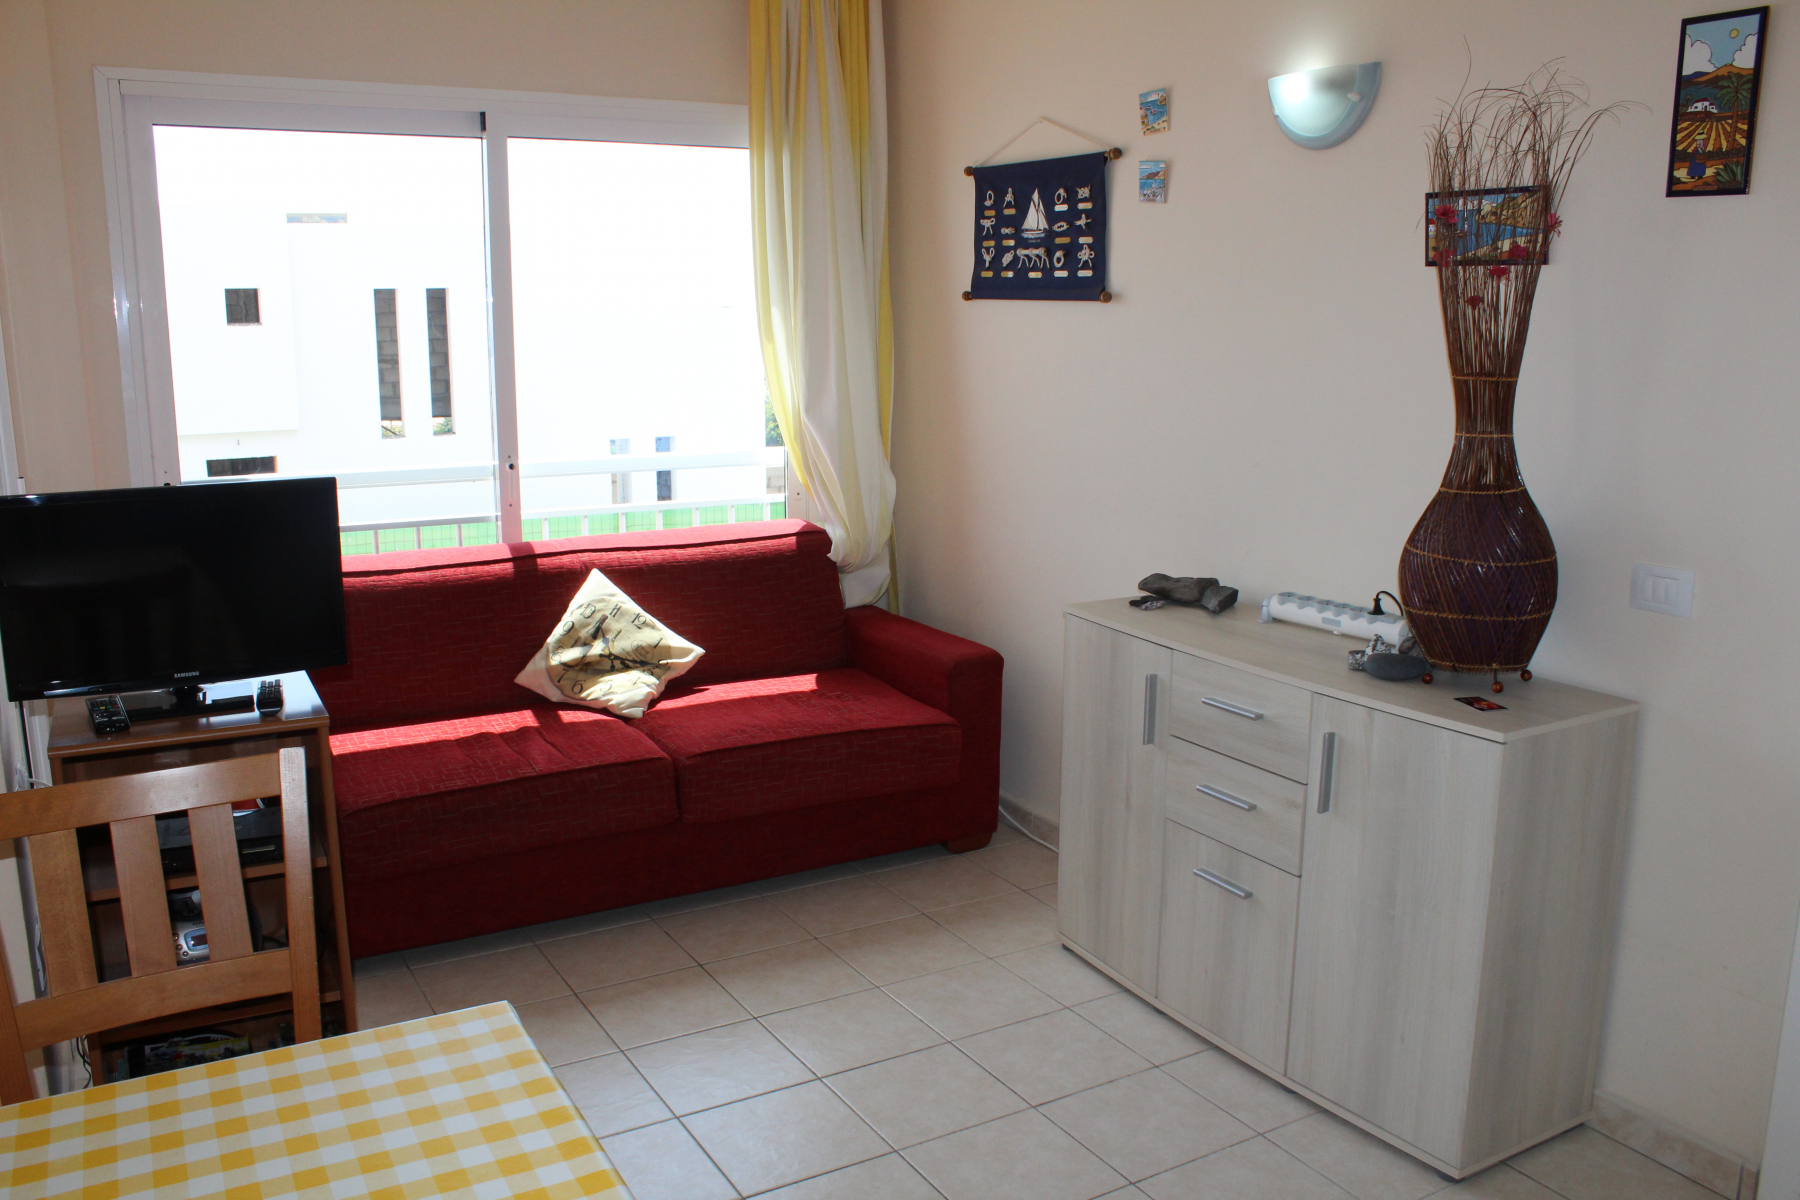 Properties for Sale in Tenerife, Canary Islands, Spain | SylkWayStar Real Estate. Apartment with 2 bedrooms in Callao Salvaje. Image-25718